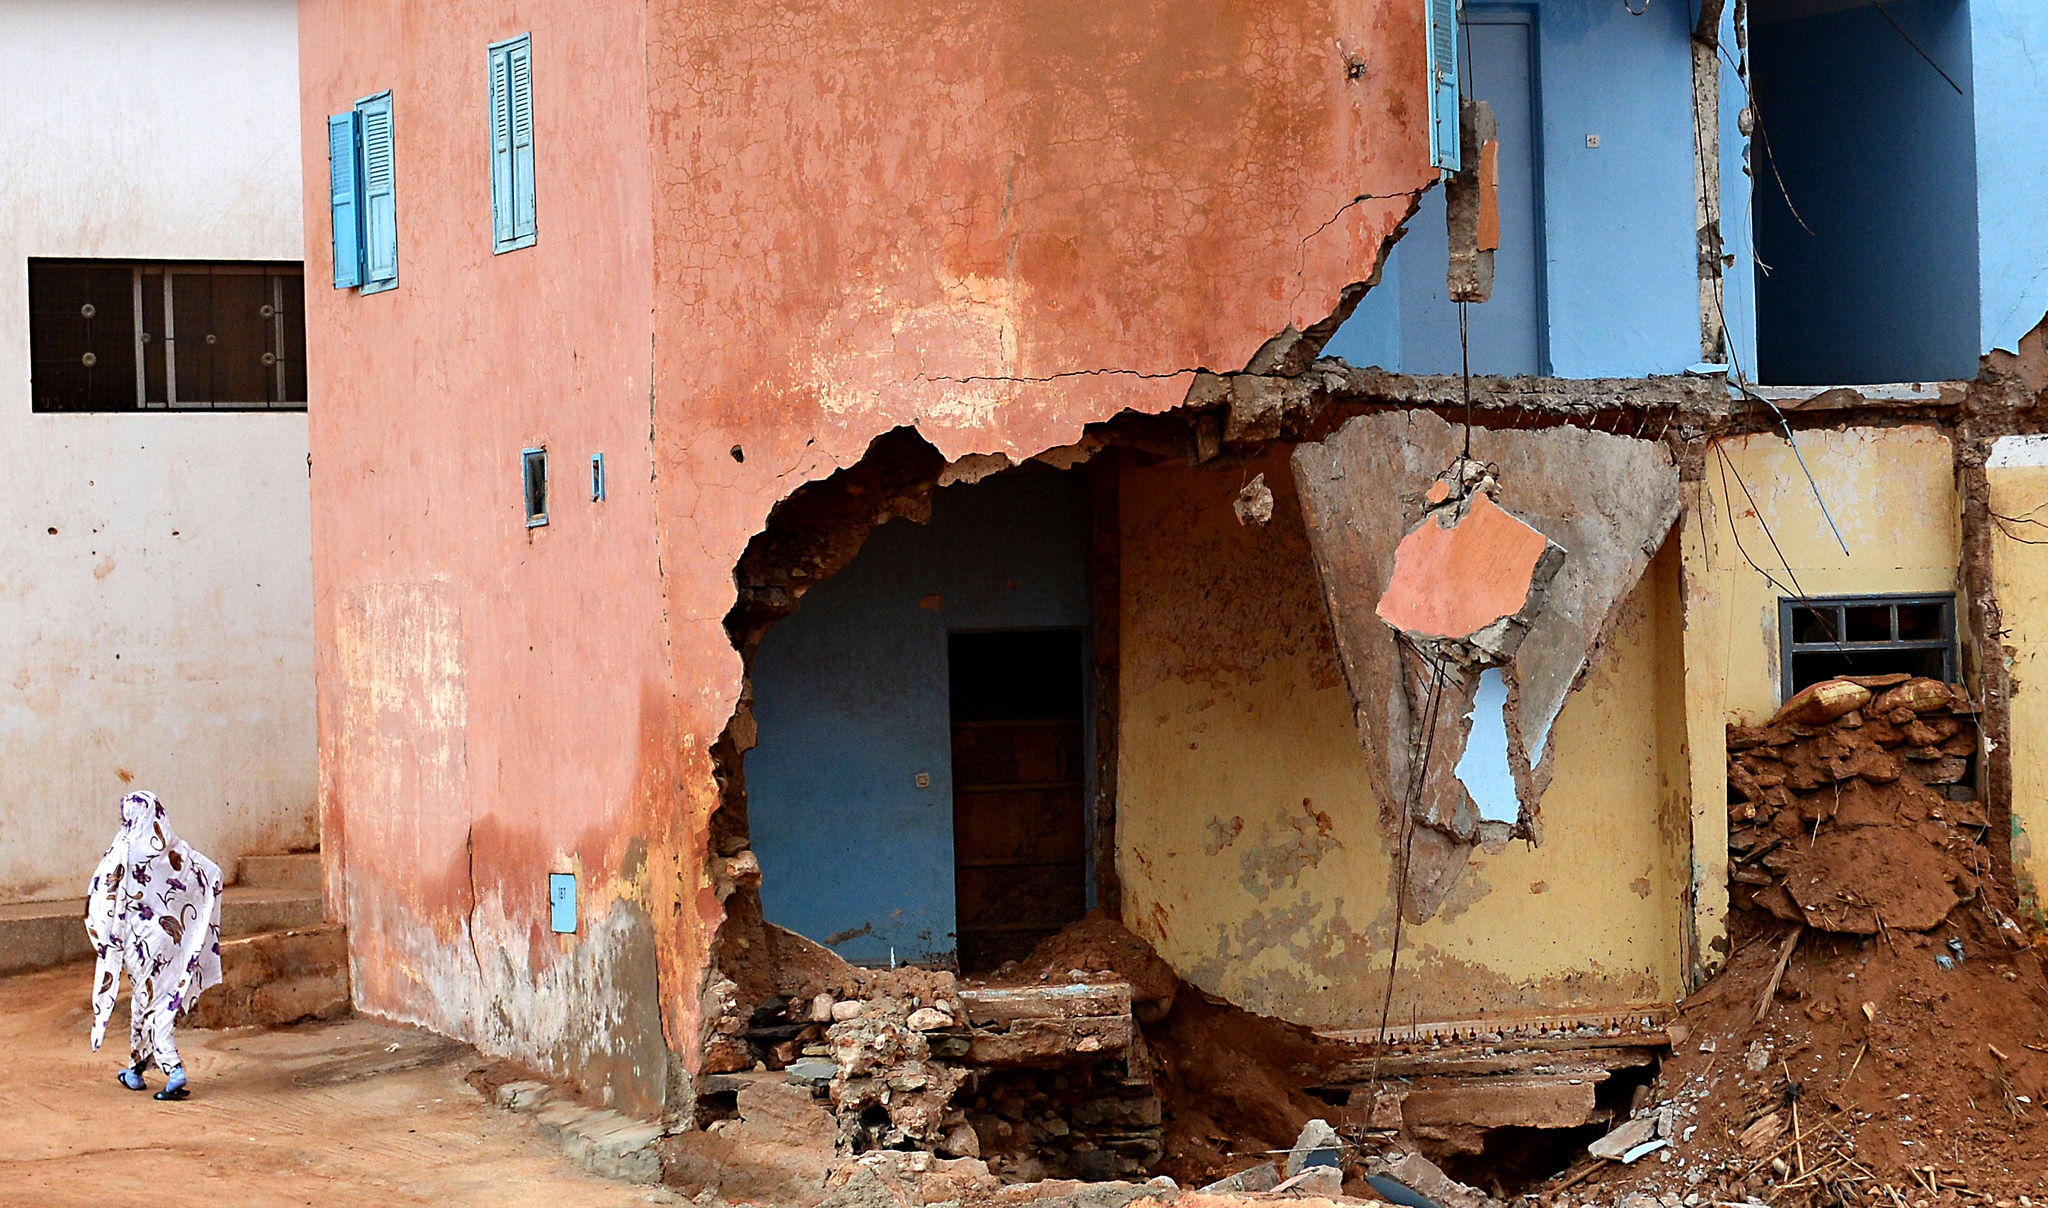 A woman walks past houses that were heavily damaged by flash floods two month earlier in the coastal Moroccan village of Aglou, north of Sidi Ifni on January 12, 2015. The floods, that were described by the residents as the heaviest storms to hit southern Morocco in decades, killed at least 32 people and left others homeless. AFP PHOTO / FADEL SENNAFADEL SENNA/AFP/Getty Images